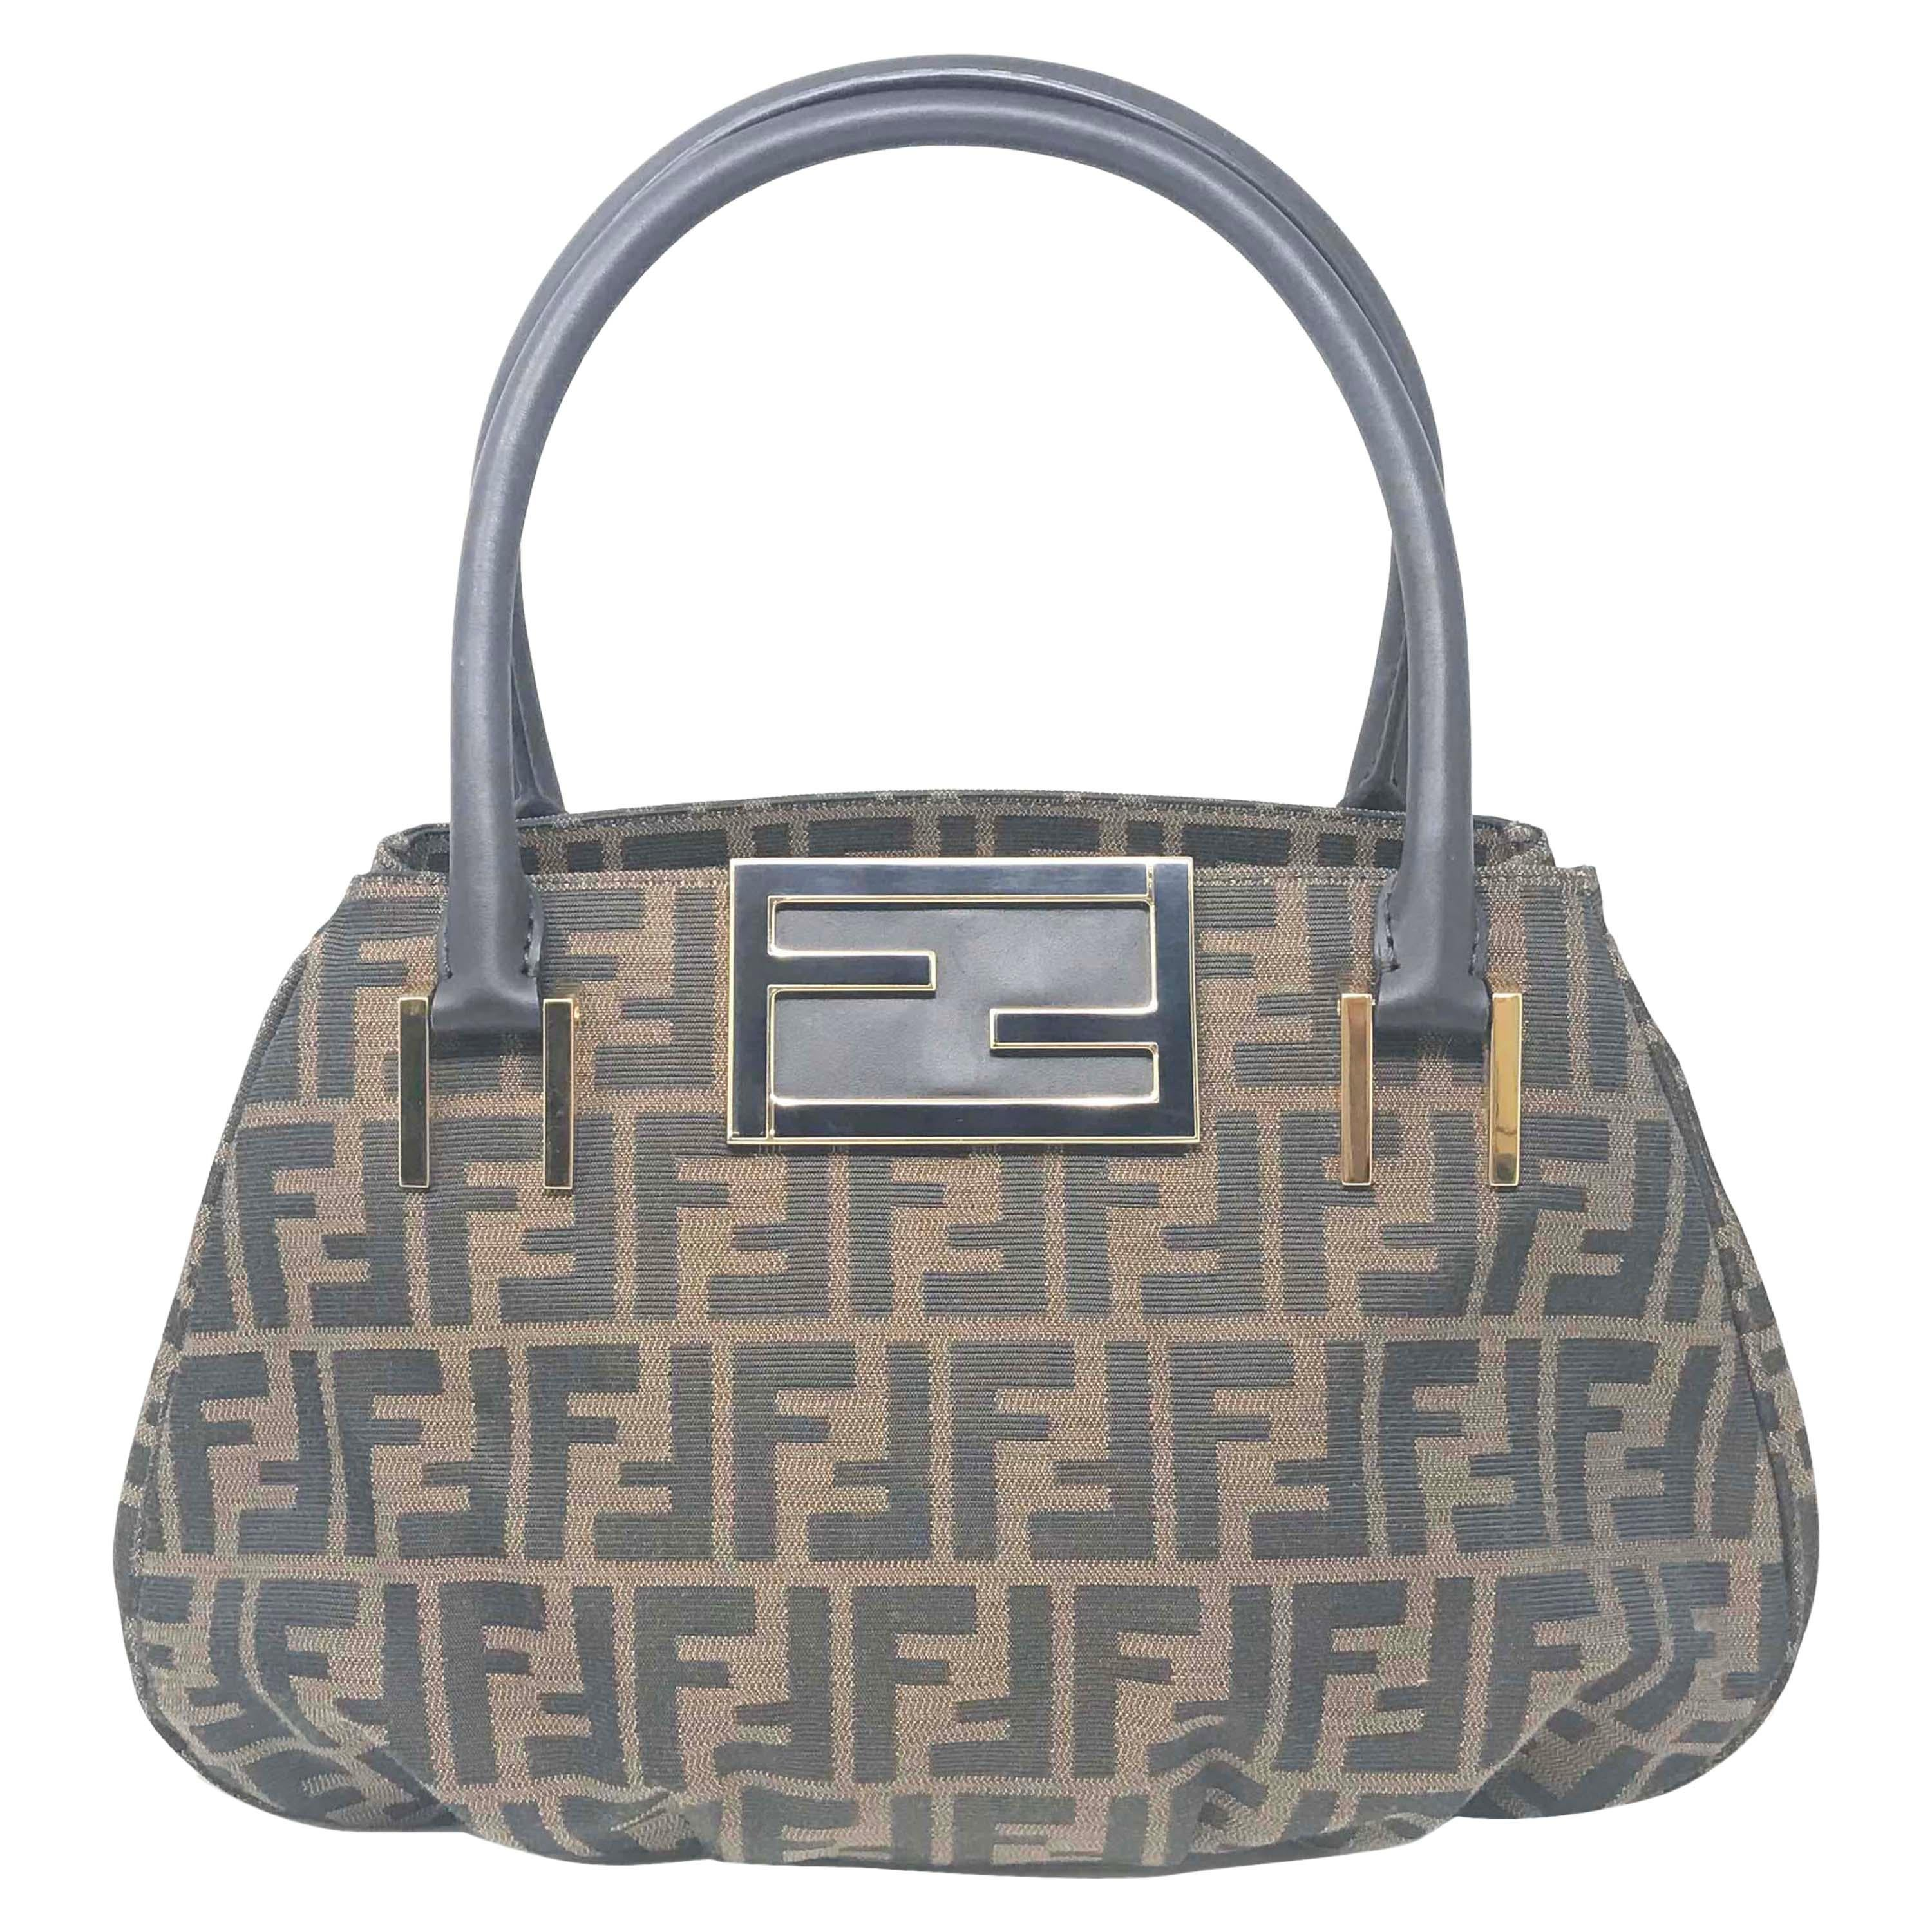 97669eb6d434 Vintage Fendi Handbags and Purses - 1